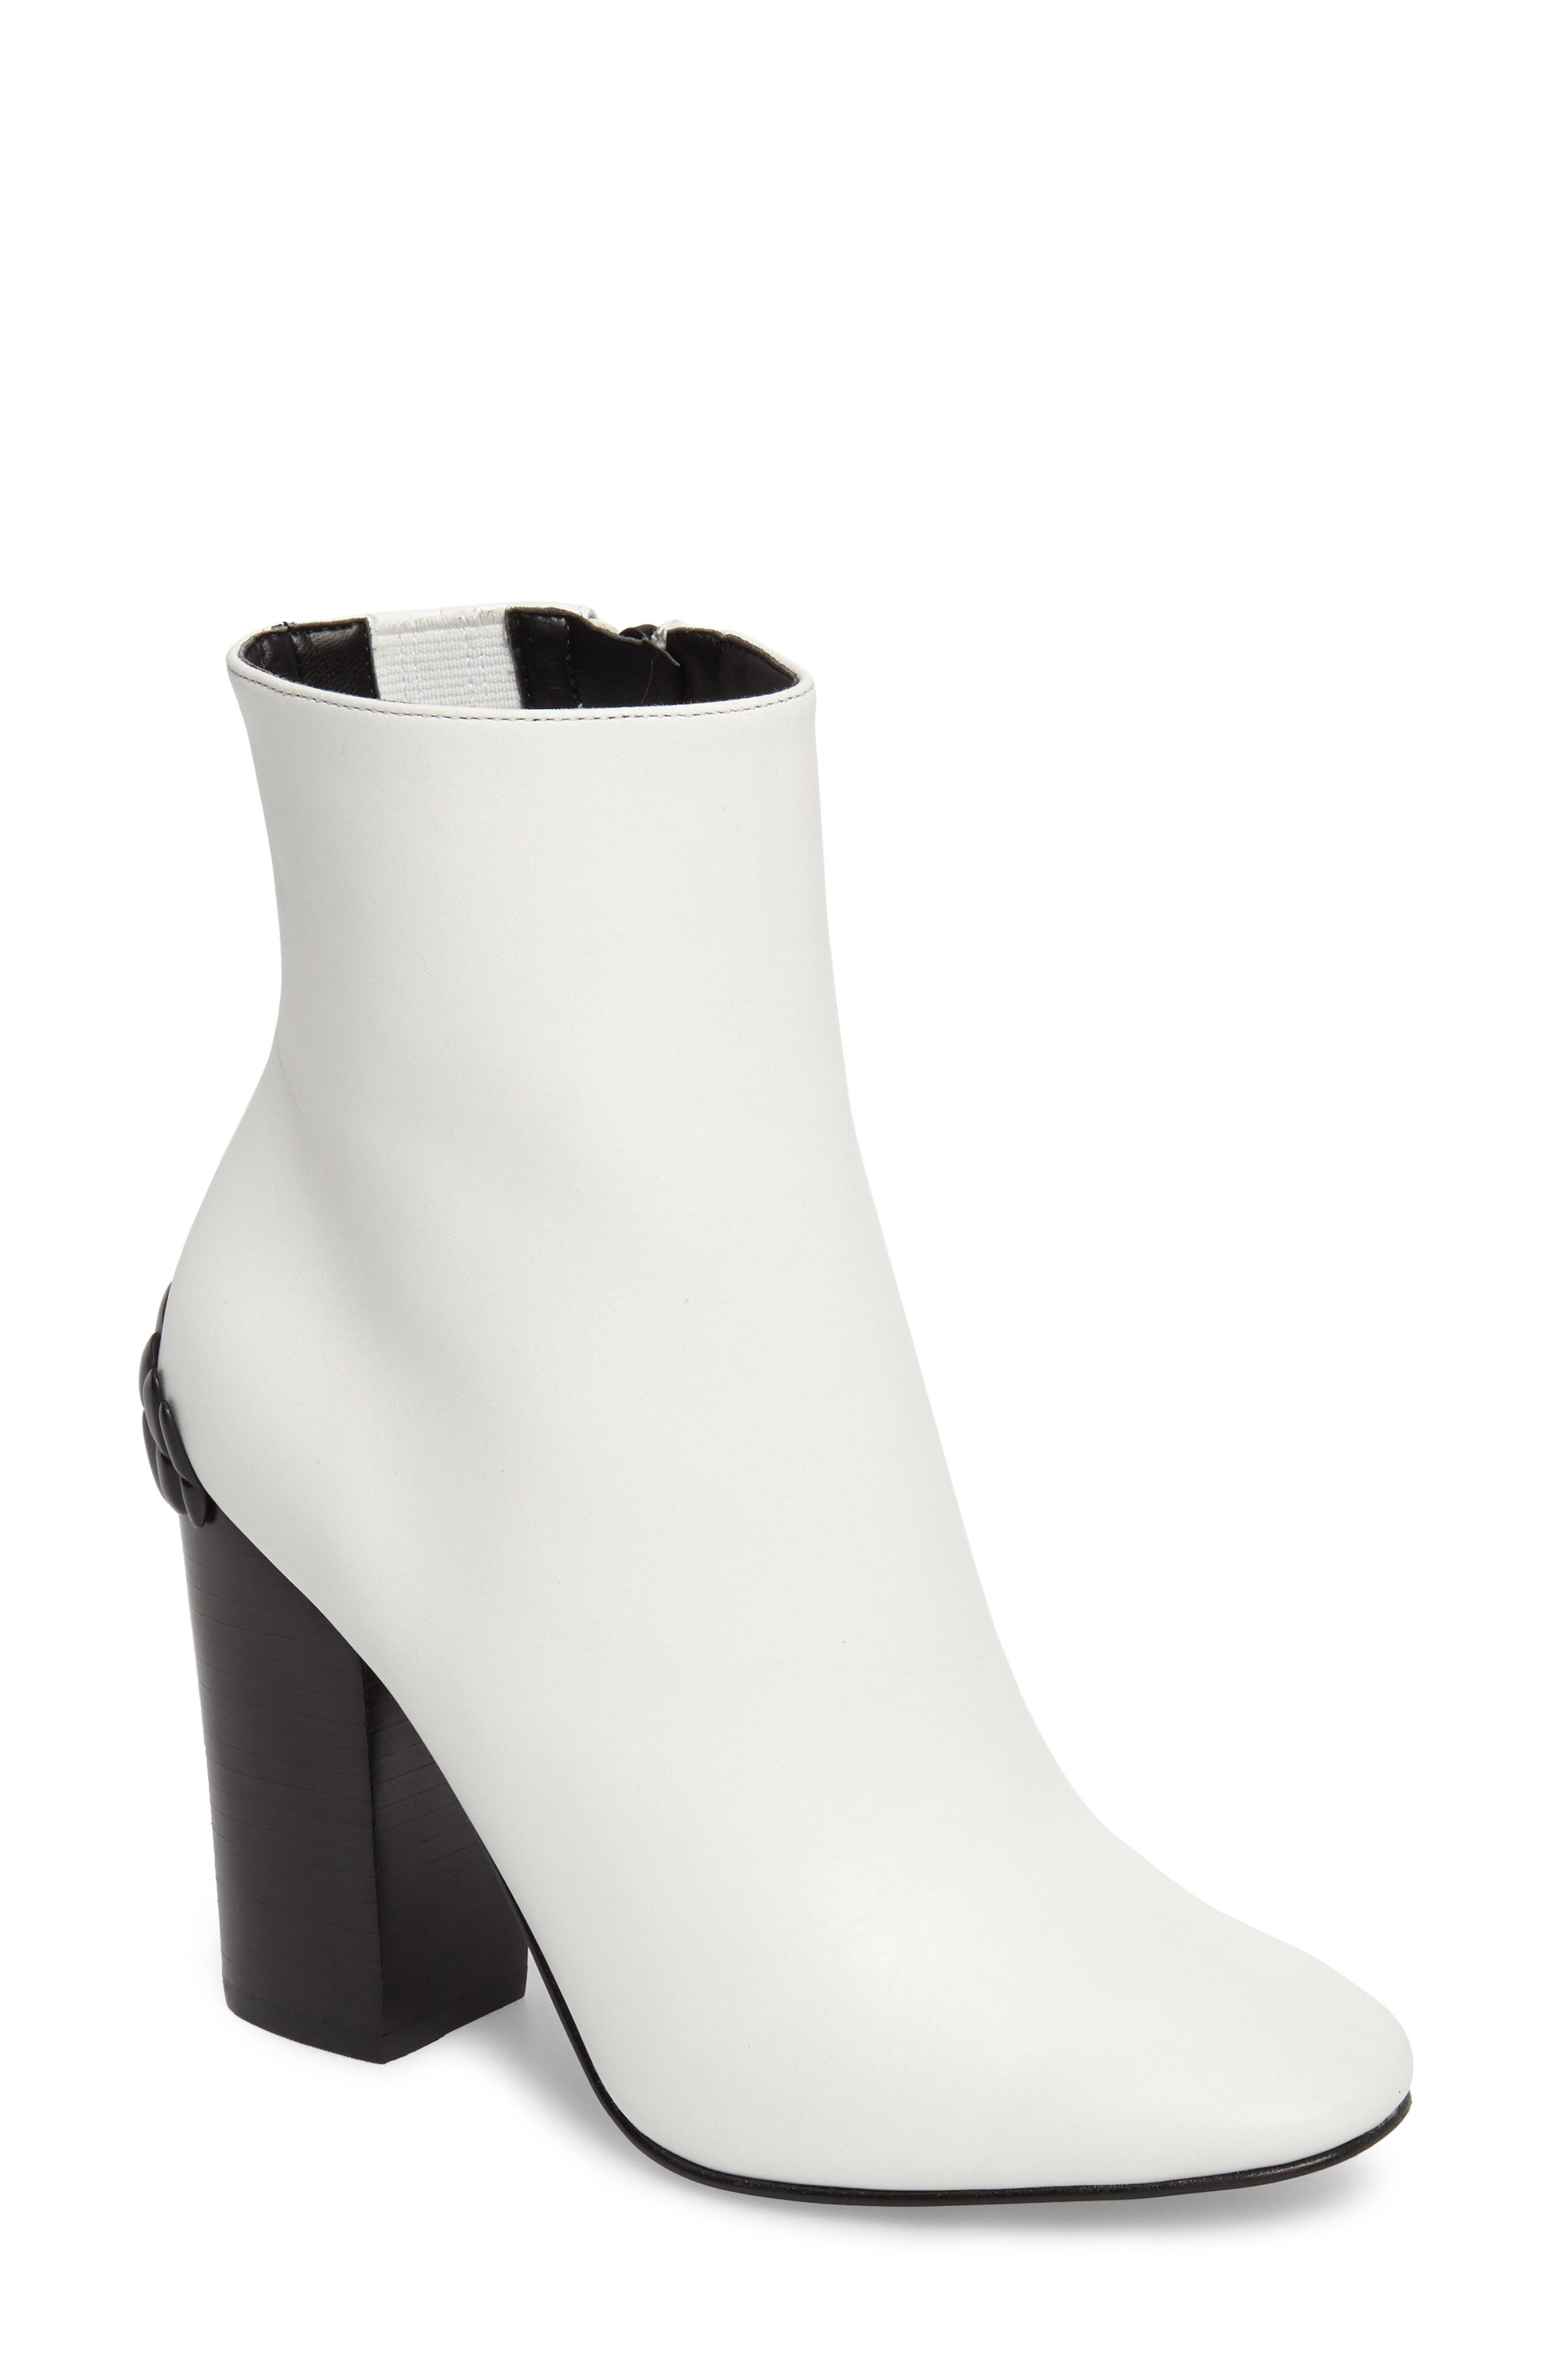 Main Image - KENDALL + KYLIE Haedyn Bootie (Women)